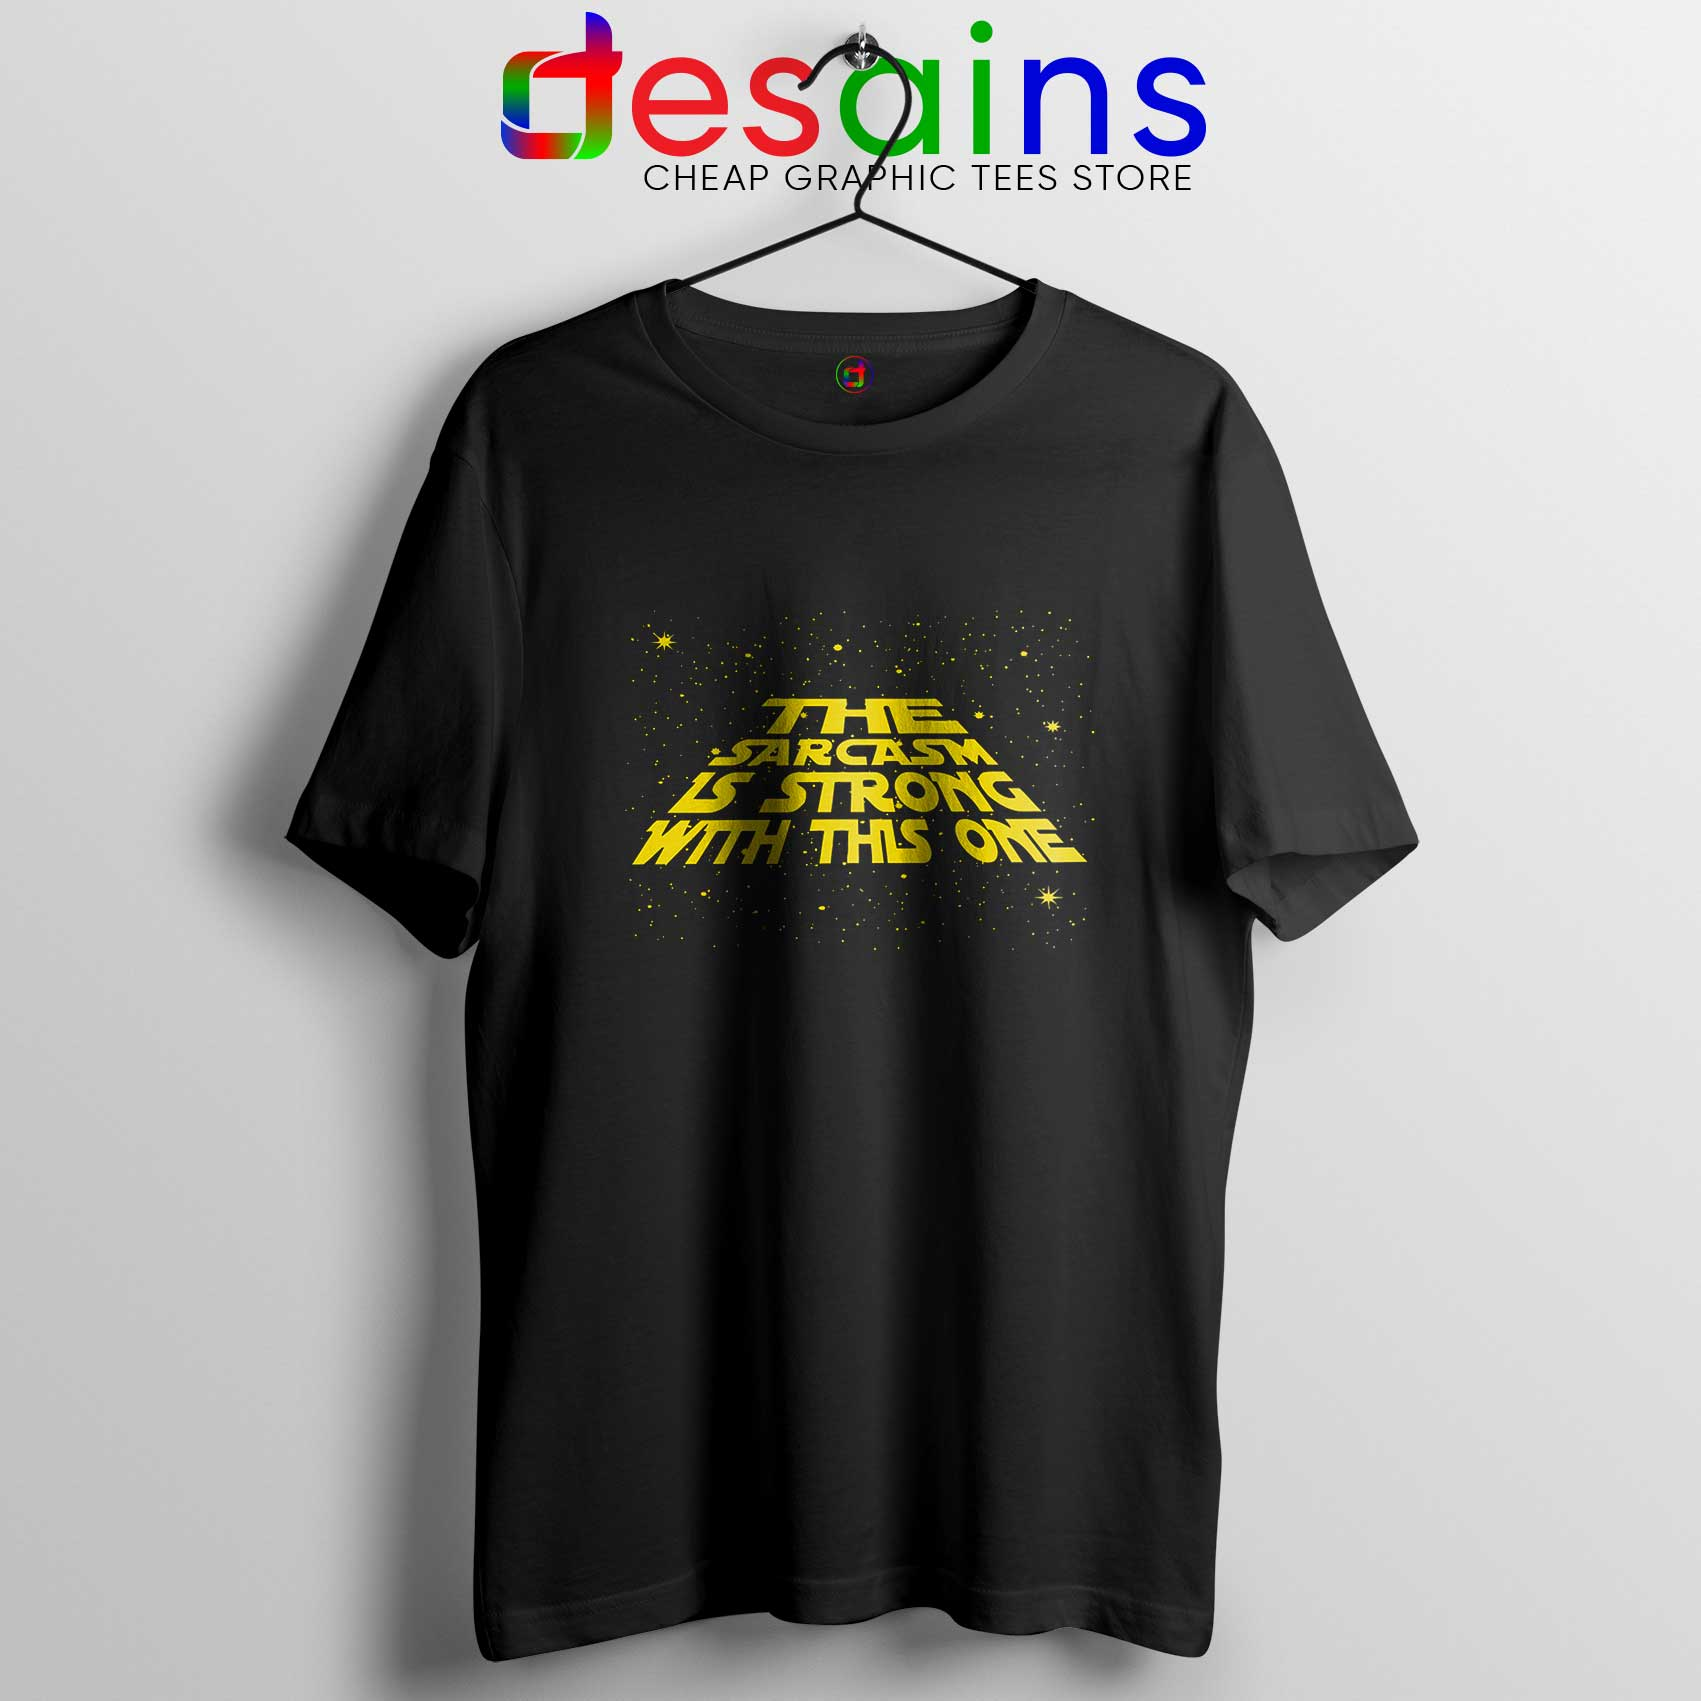 686f9085 Cheap-Tshirt-The-Sarcasm-Is-Strong-With-This-One-S-3XL.jpg